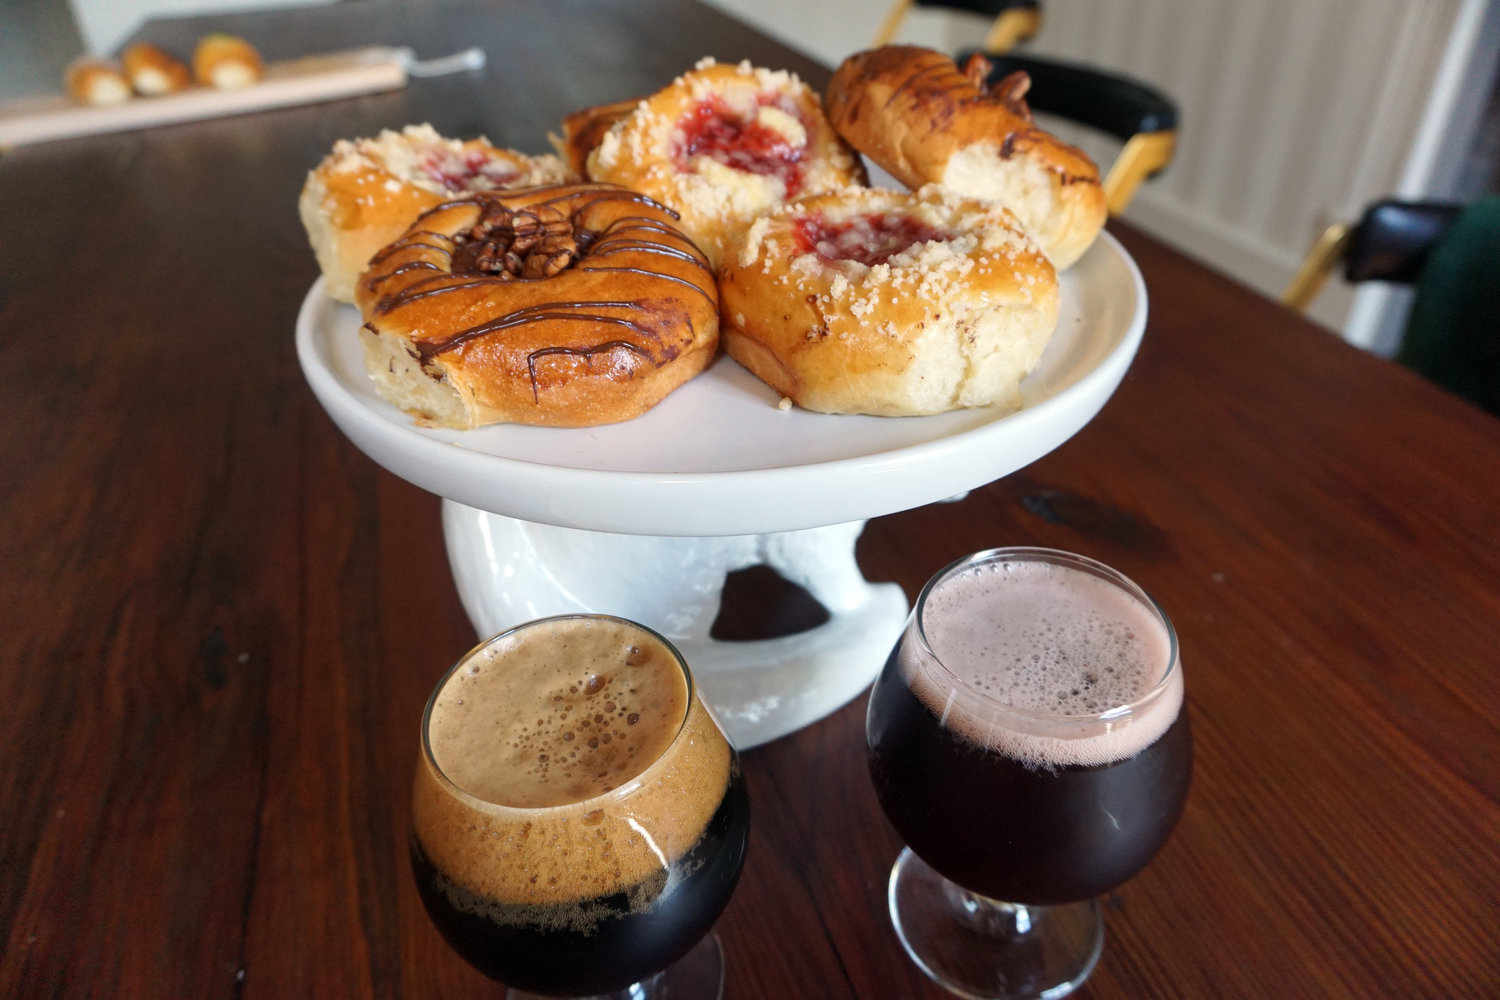 Batch's kolaches and beers